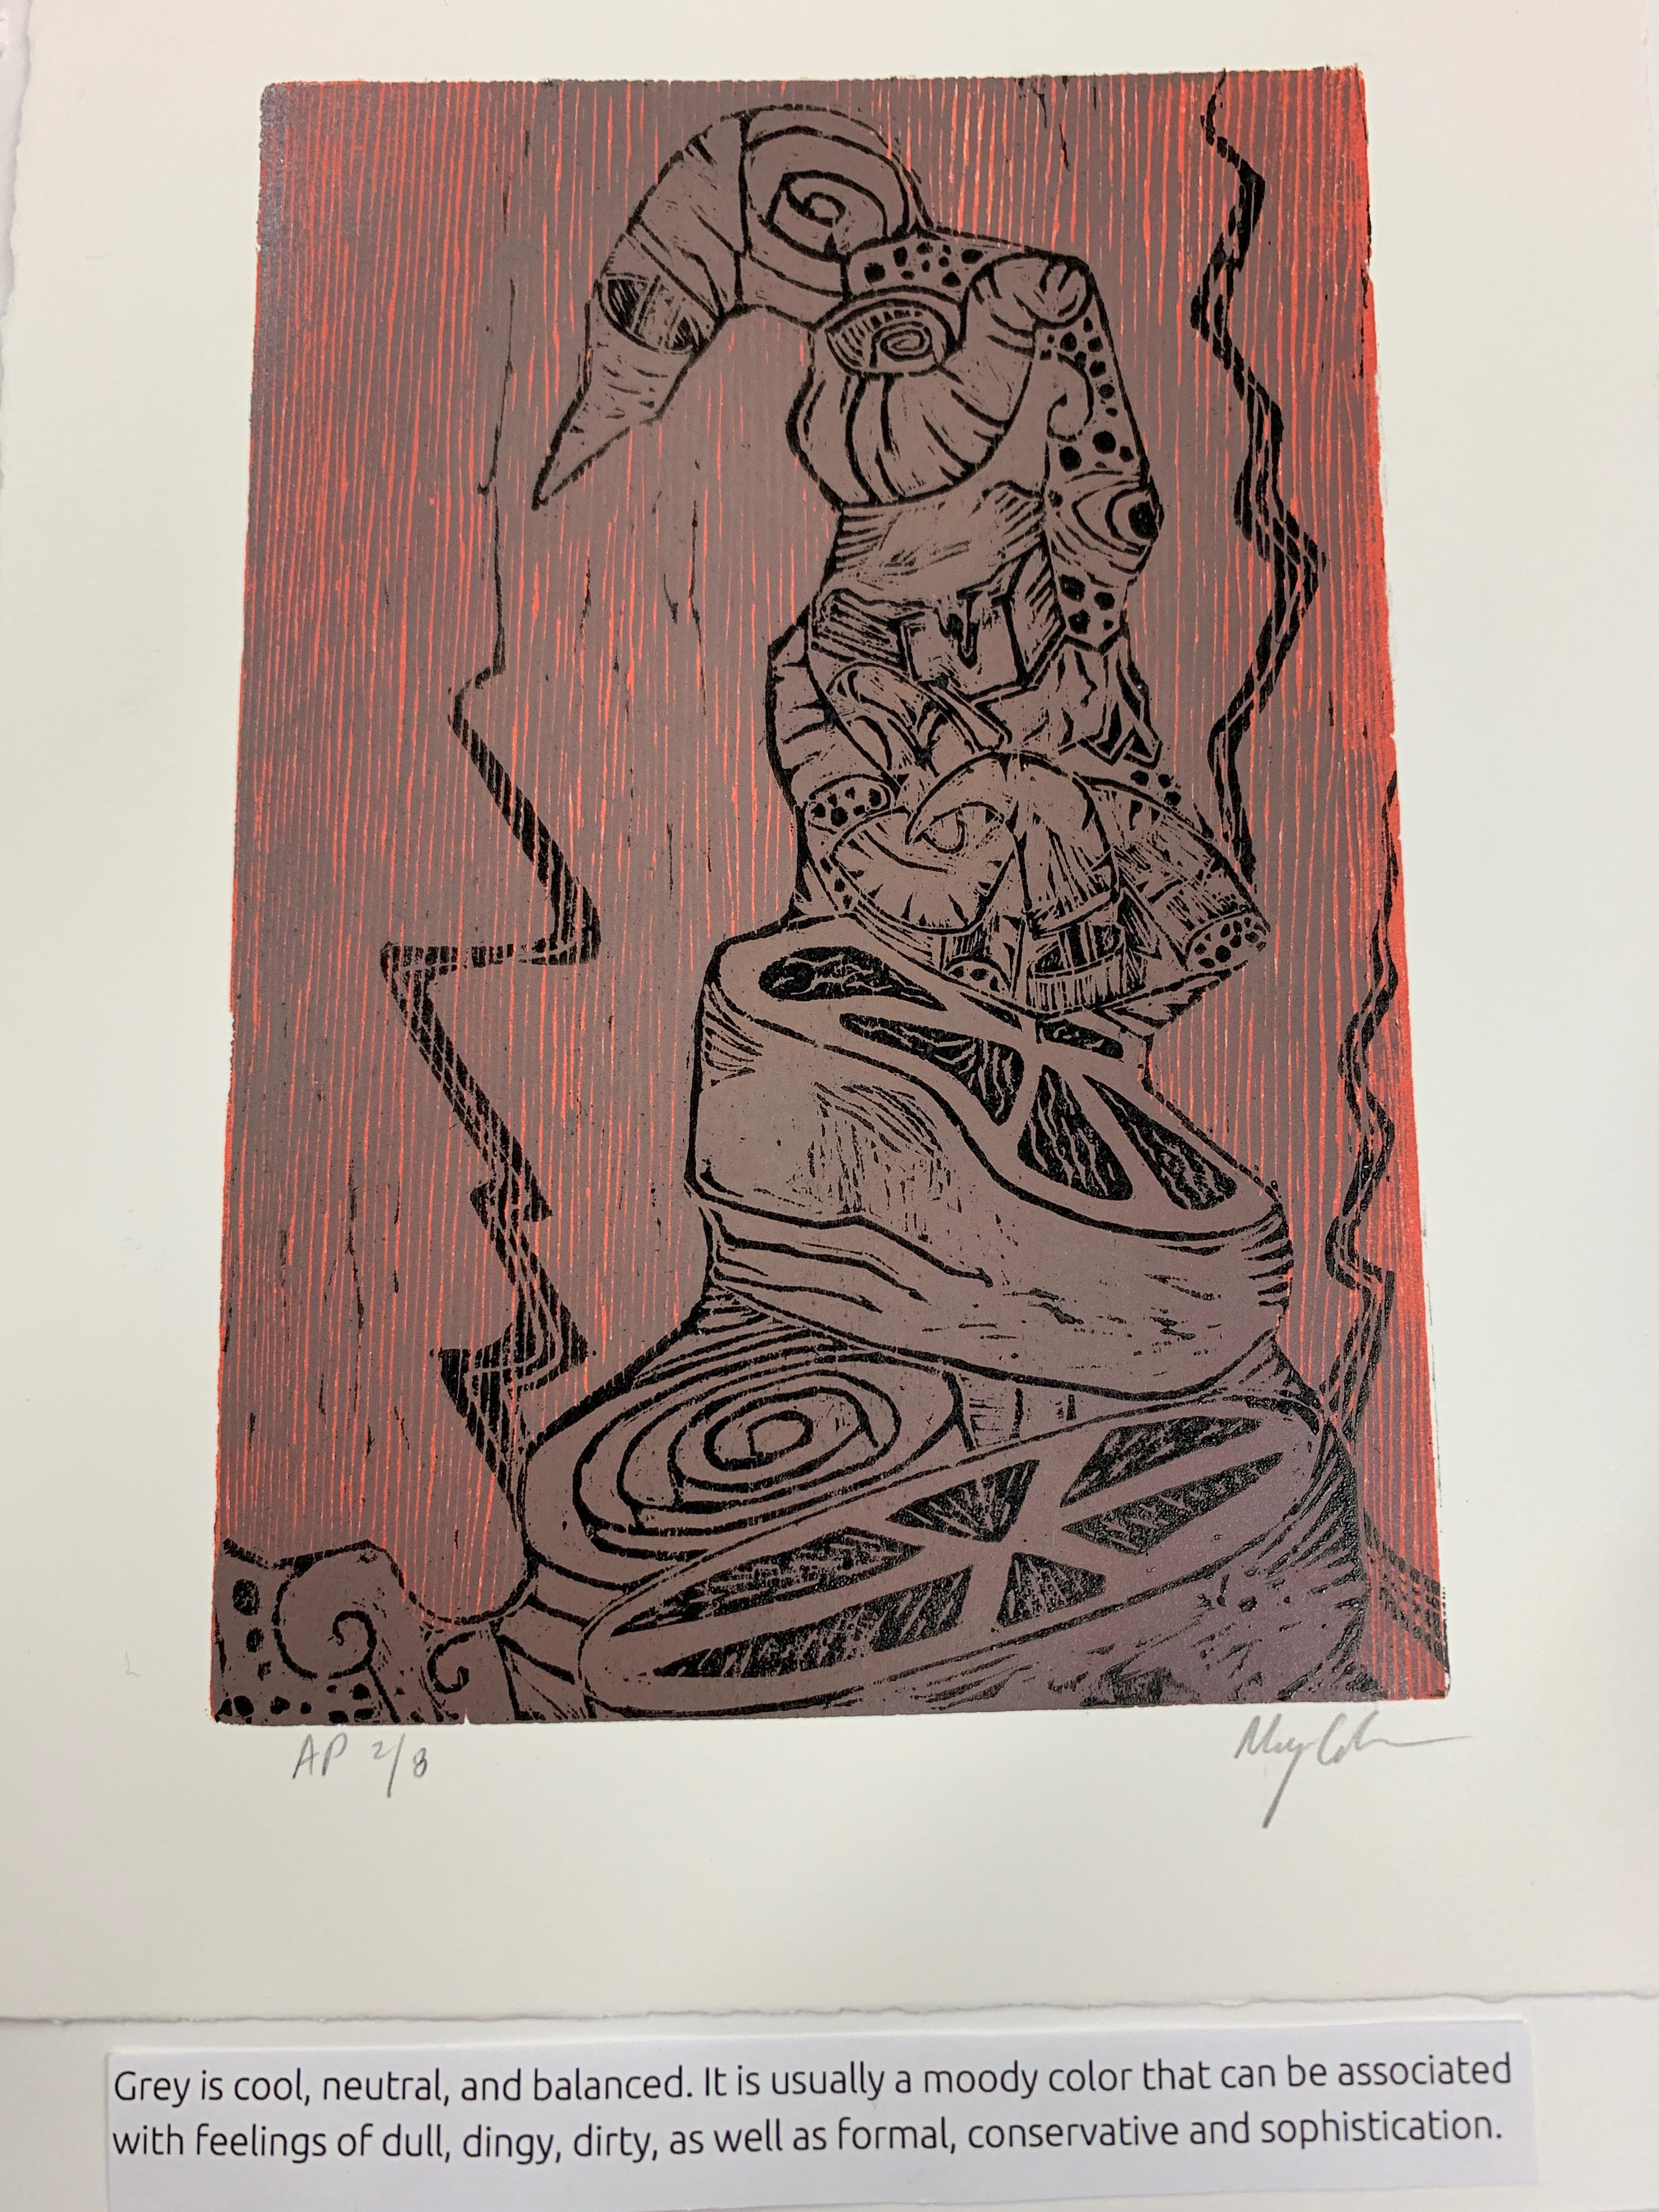 Page 9. Caption: The abstract print is predominantly grey, with a red background. Grey is cool, neutral, and balanced. It is usually a moody color that can be associated with feelings of dullness, dinginess, dirtiness, as well as formality, being conservative and/ or sophistication.